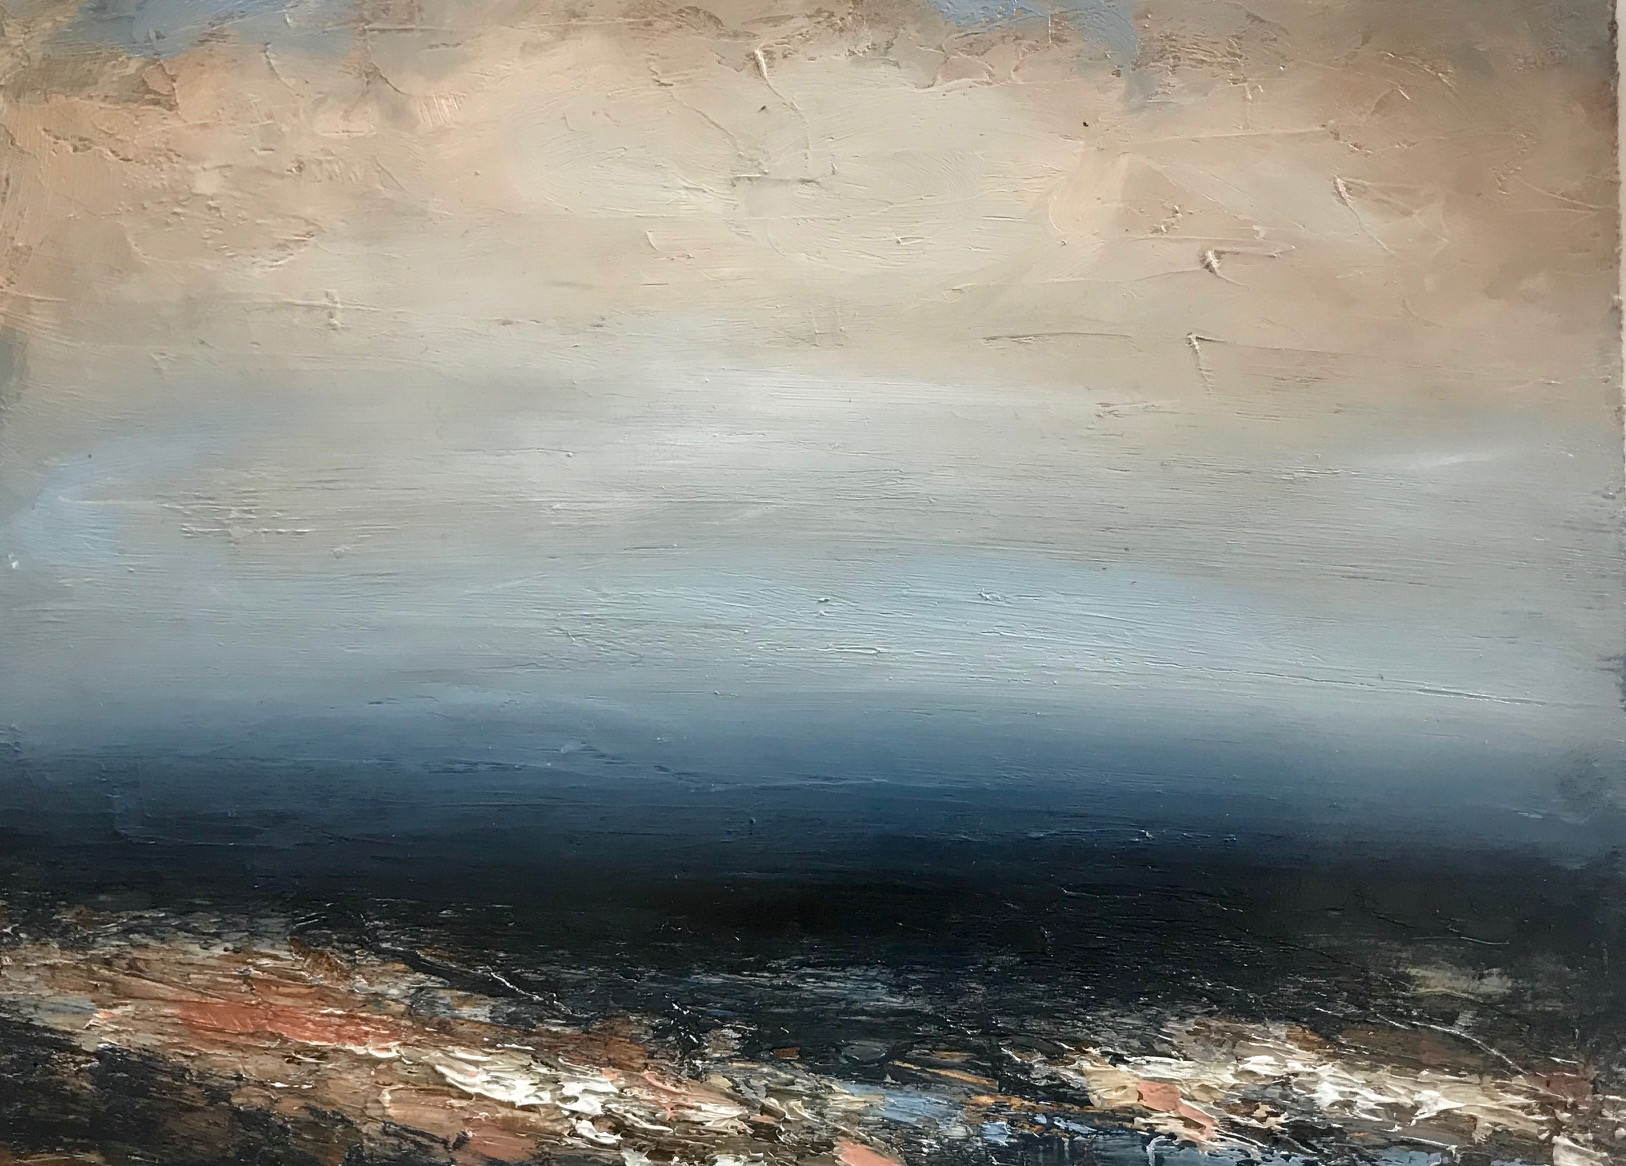 Title: Seascape 3  Size: 28 x 20 cm (framed size 55 x 47 cm)  Medium: Oil on panel  Price: £360   Buy Now